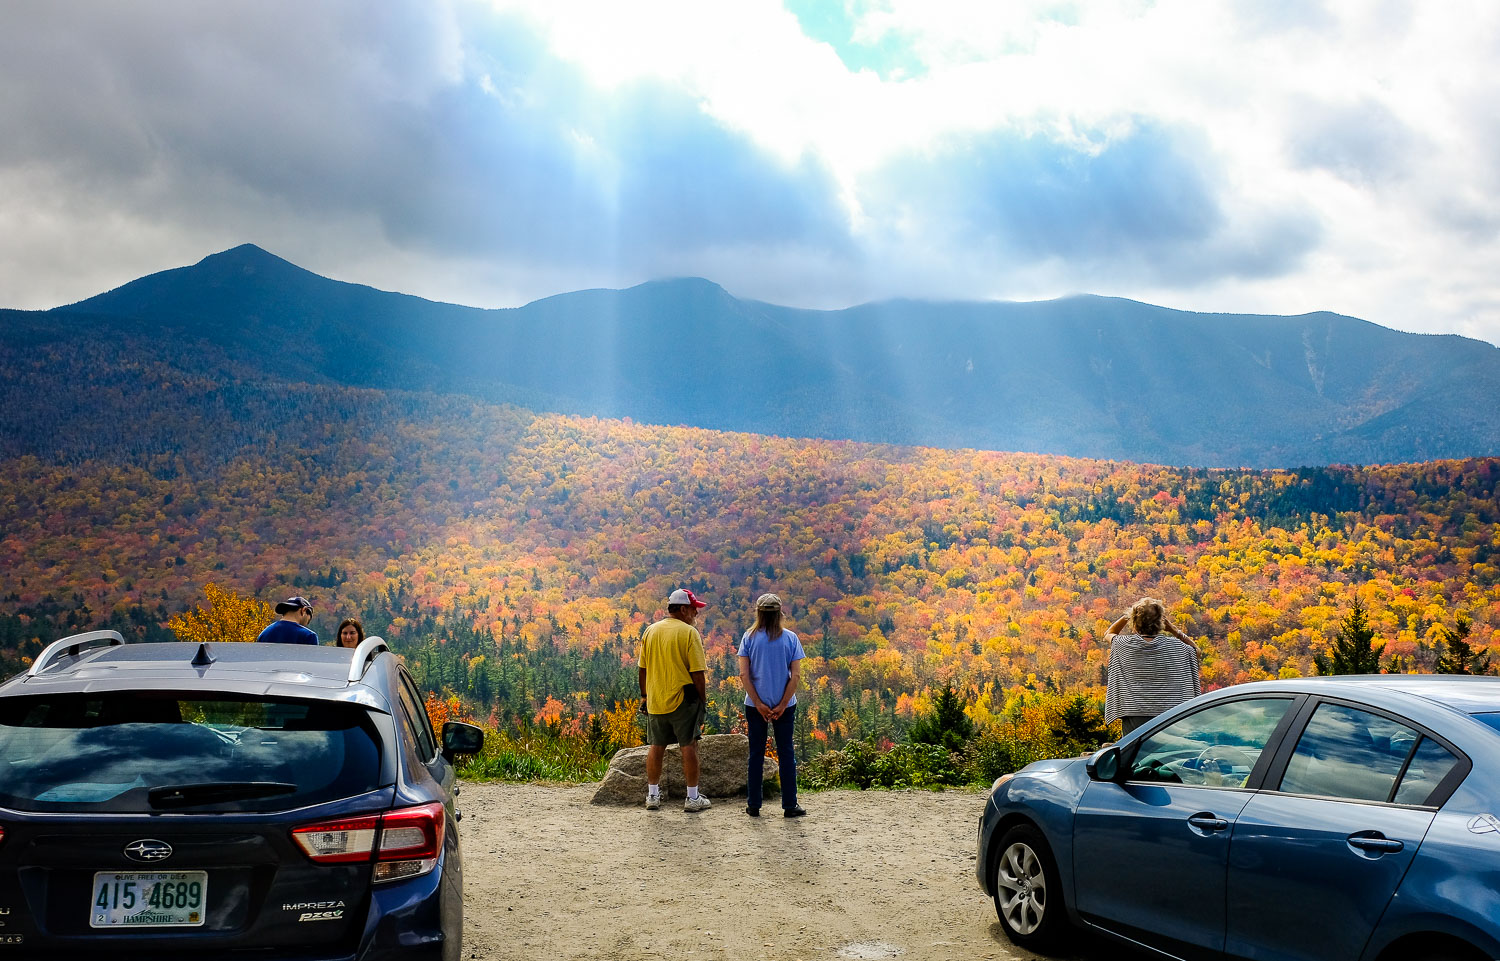 People view the Presidential Range at one of the scenic overlooks along the Kancamagus Highway.